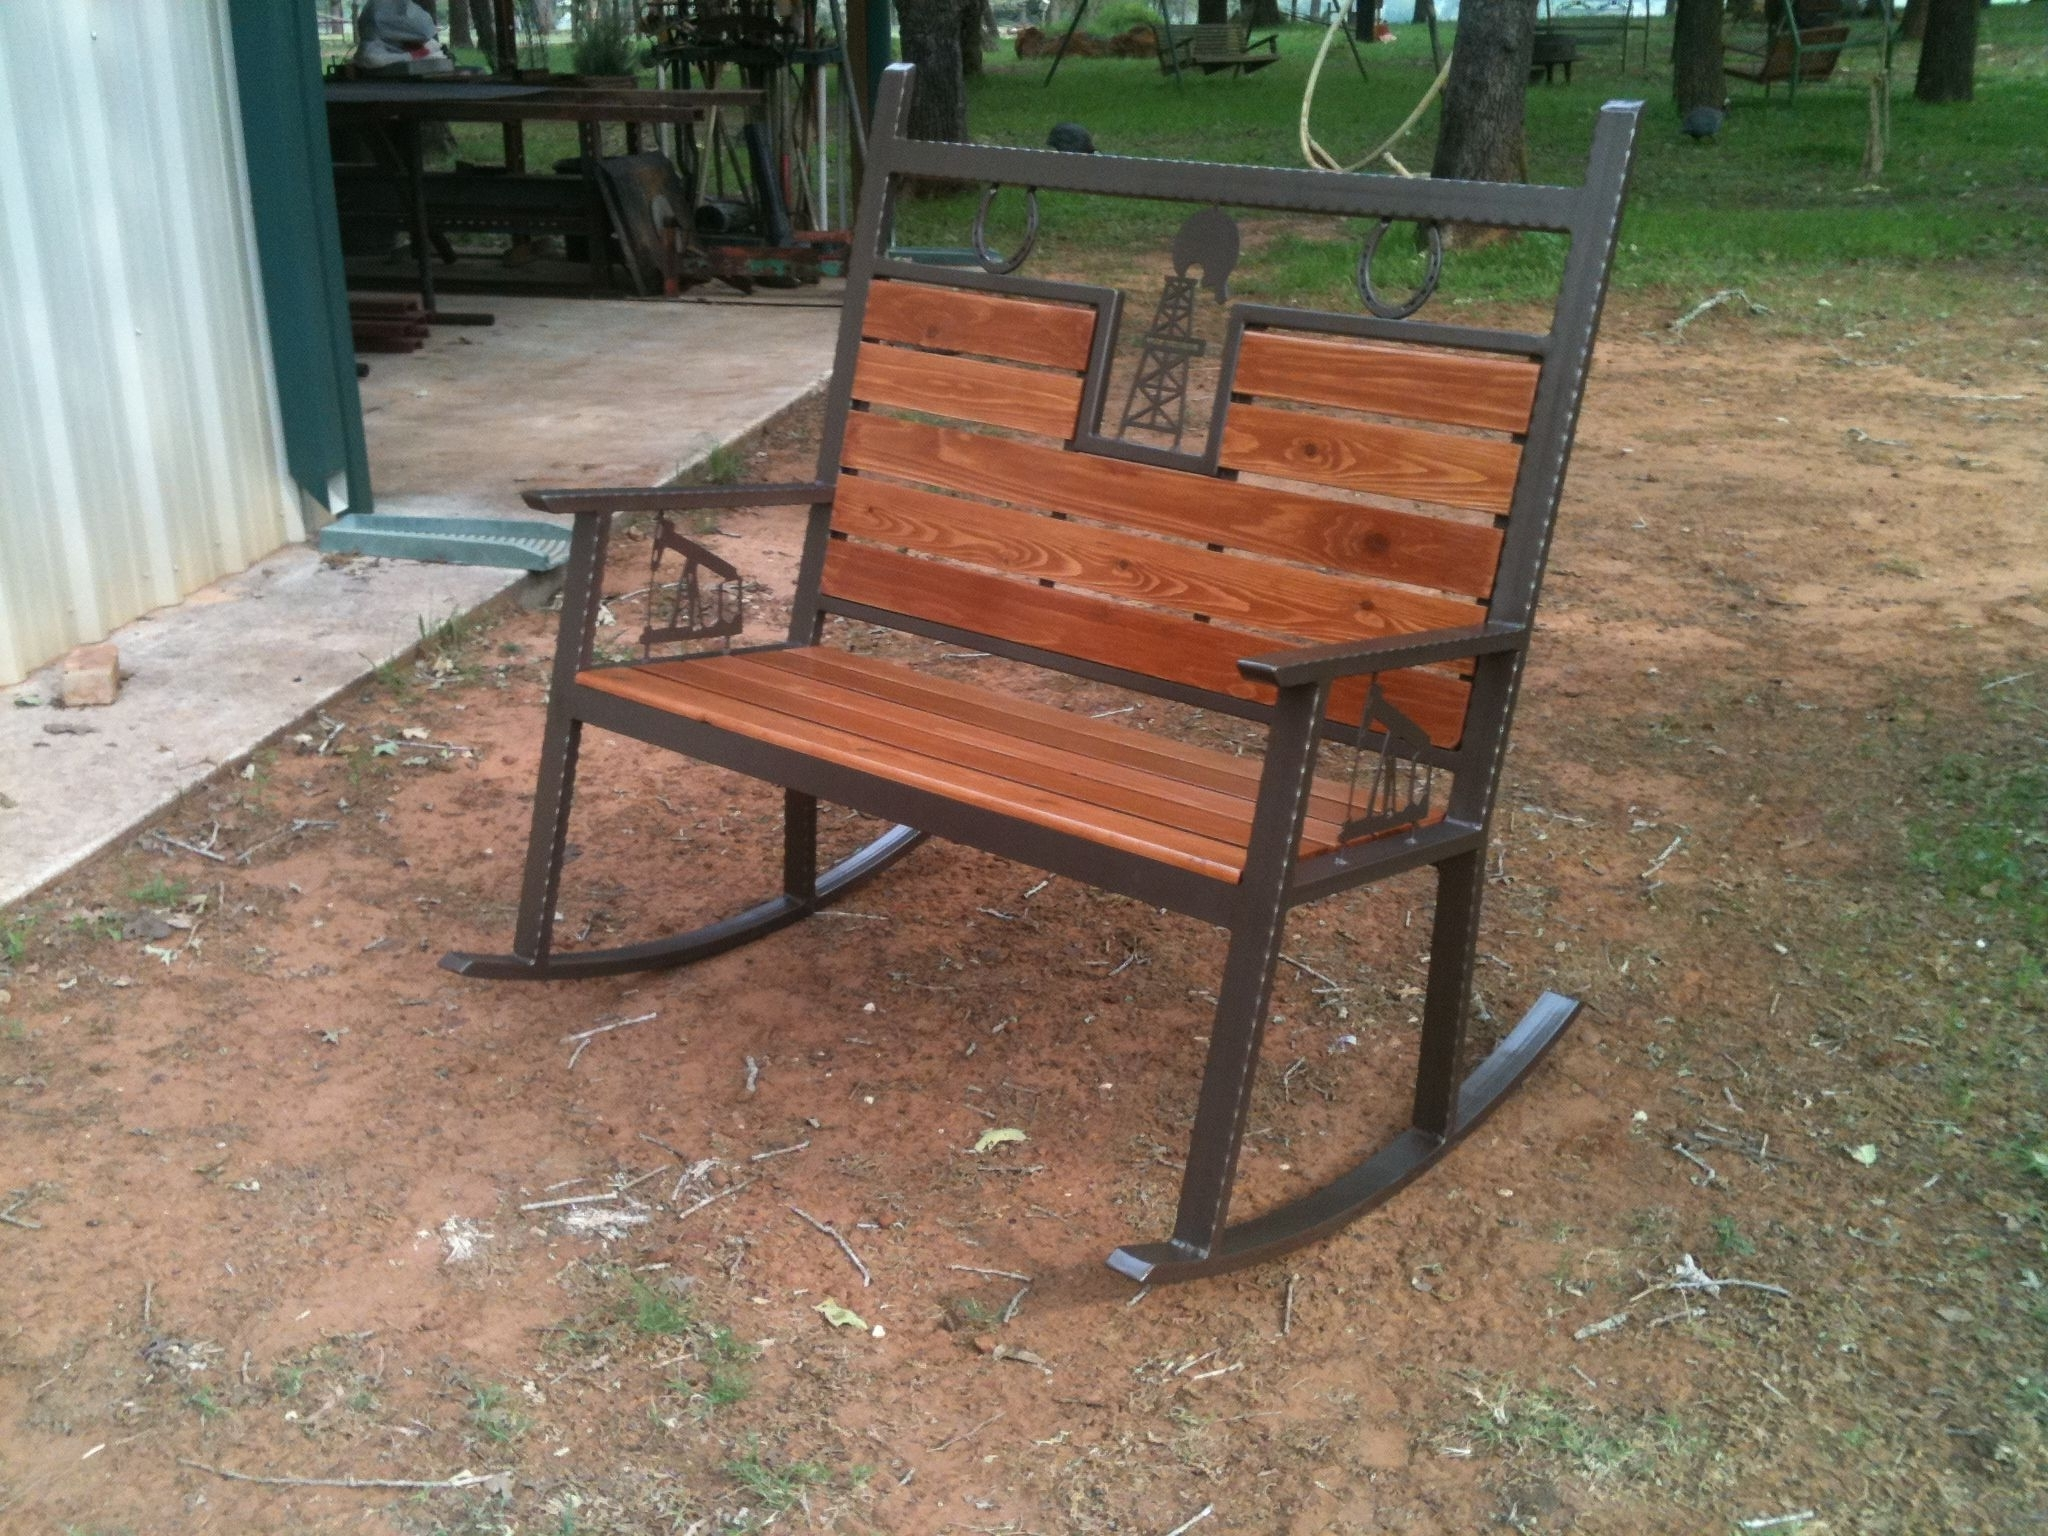 Rocking Bench Made With A Cnc Burntables #bench #chair #patio #porch Intended For 2017 Patio Furniture Rocking Benches (View 13 of 15)